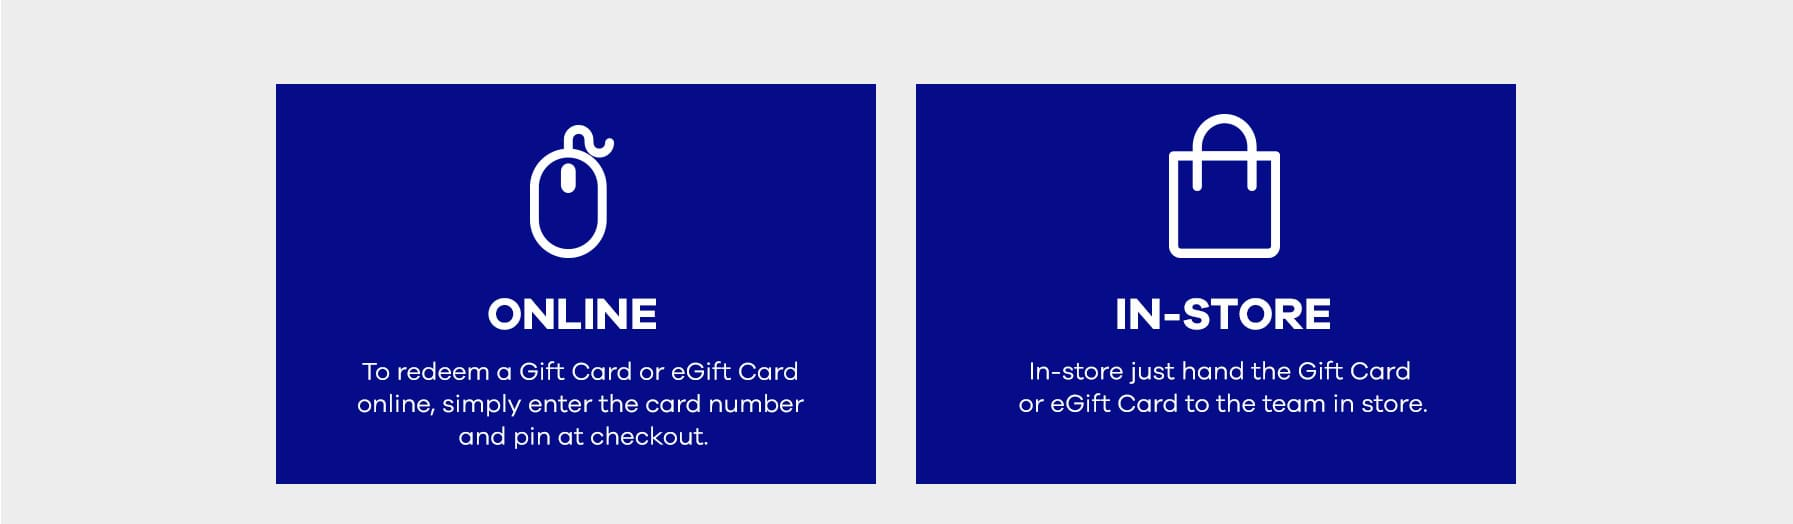 How to use your gift card